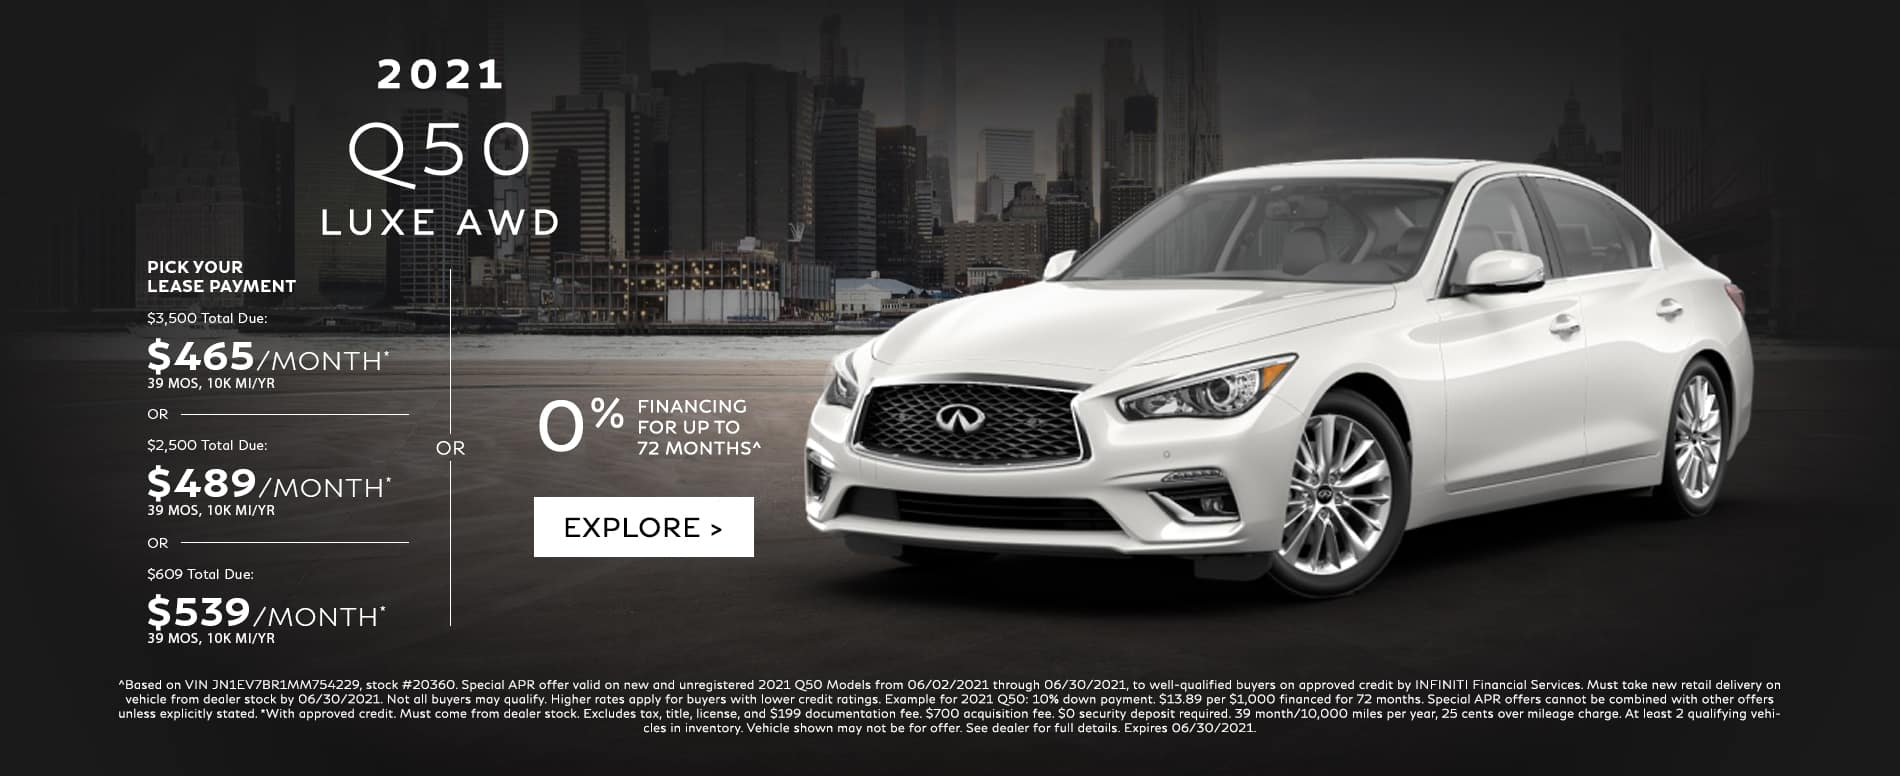 Lease a new Q50 for $465 per month. See dealer for details.